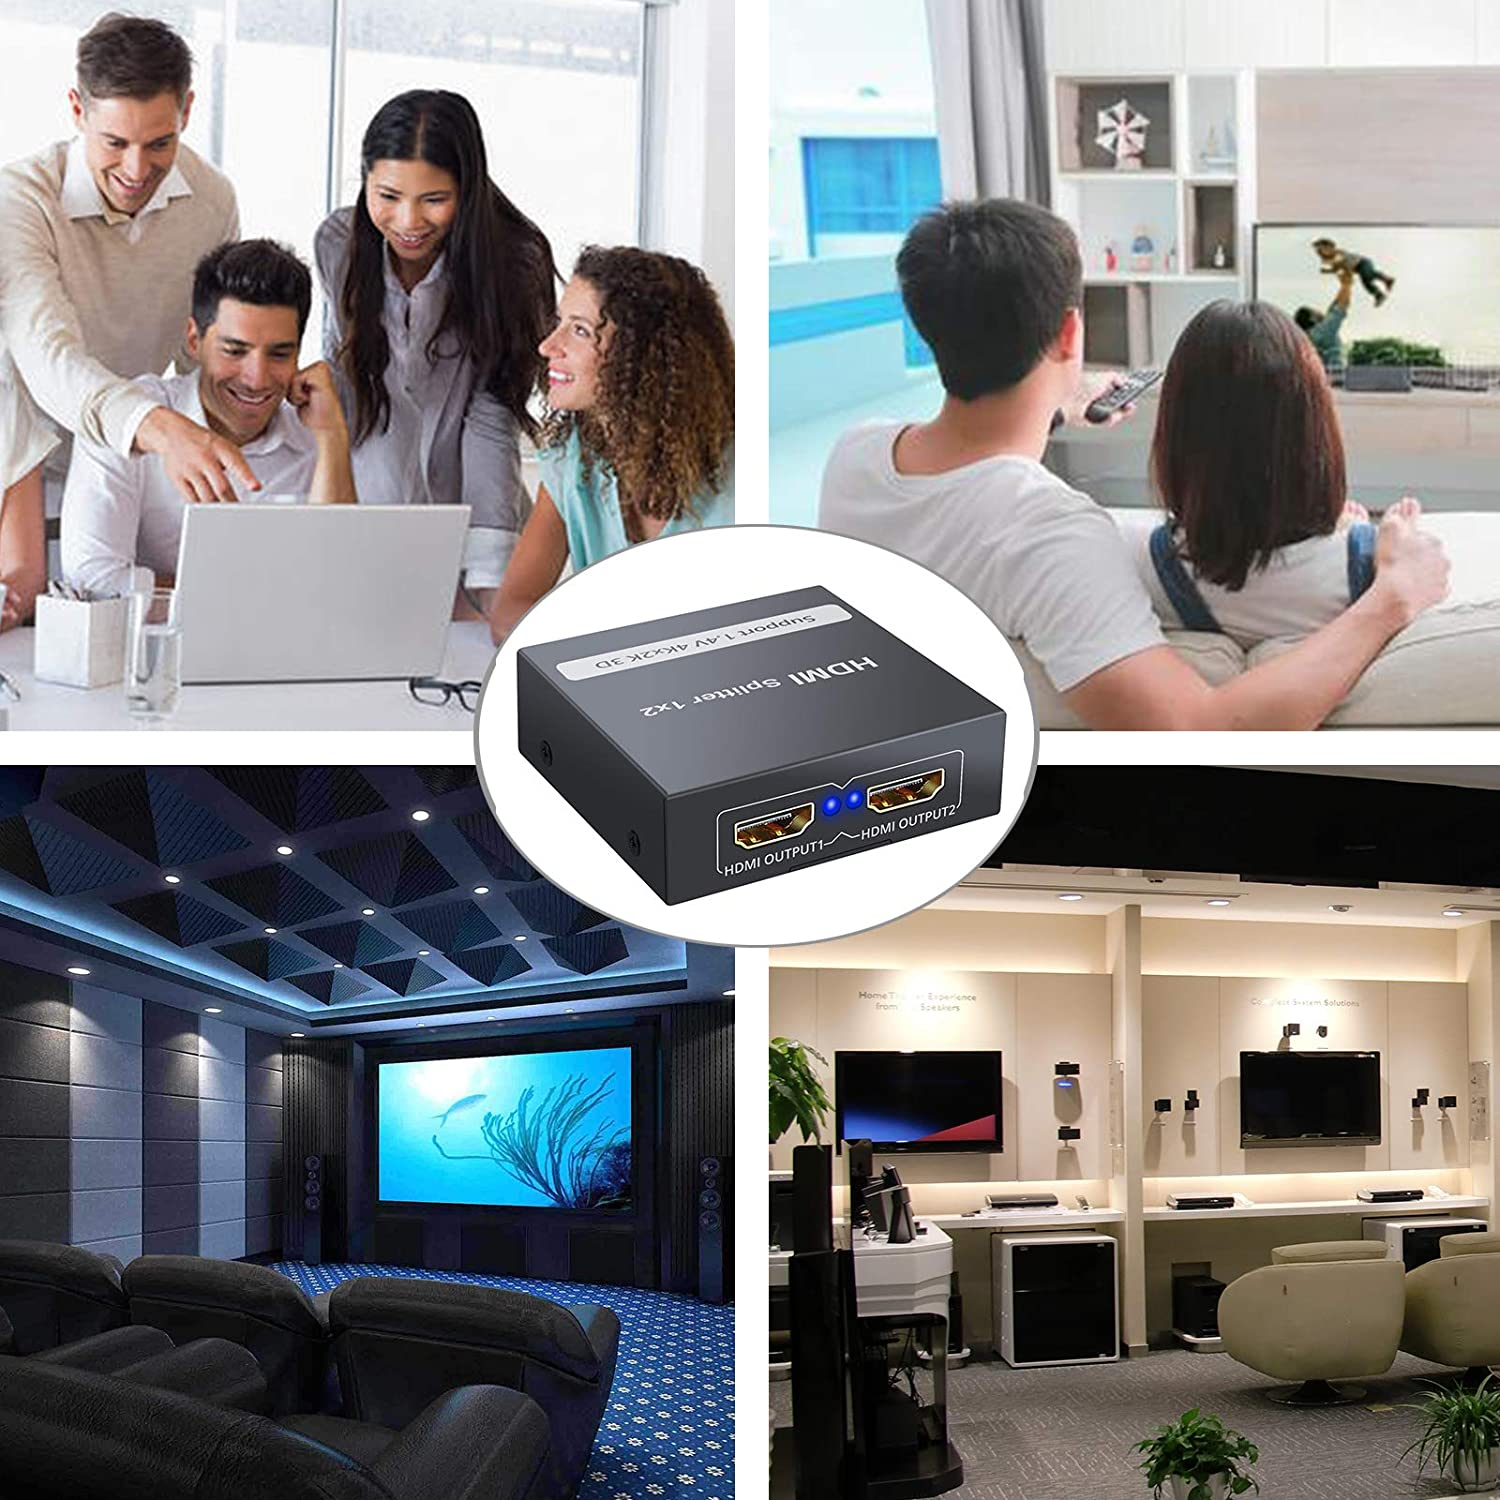 PS4 PS3 Fire Stick Blu Ray Apple TV HDTV CAMWAY HDMI Splitter 1 in 2 Out 1x2 Ports Box with HDMI Cable Supports Ultra HD 4K@30HZ 3D 1080P for Xbox